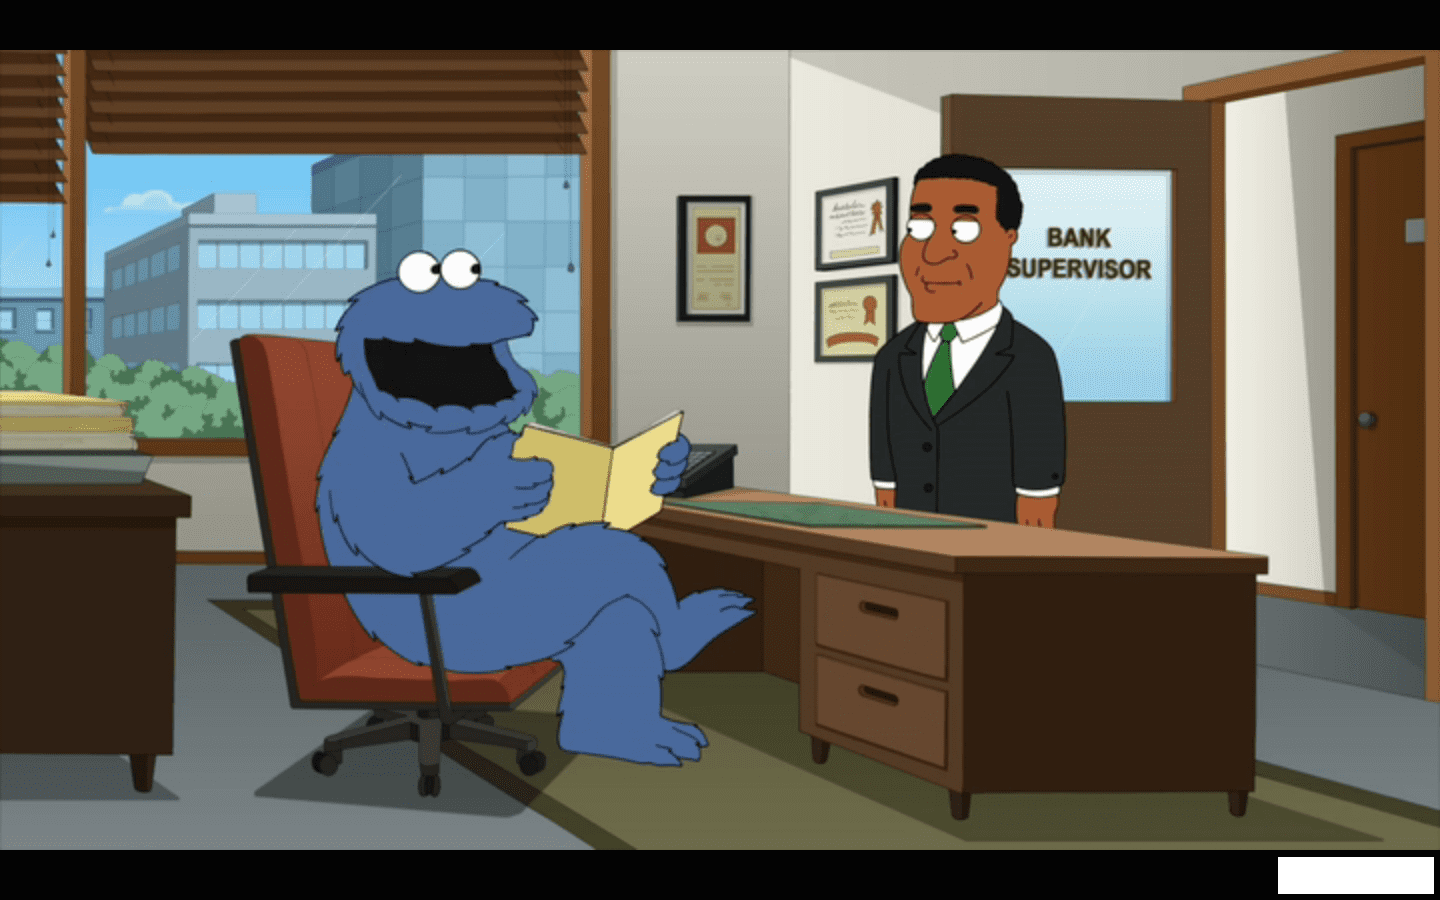 Looks Like The Cookie Monster Is On The Up And Up Since His Days